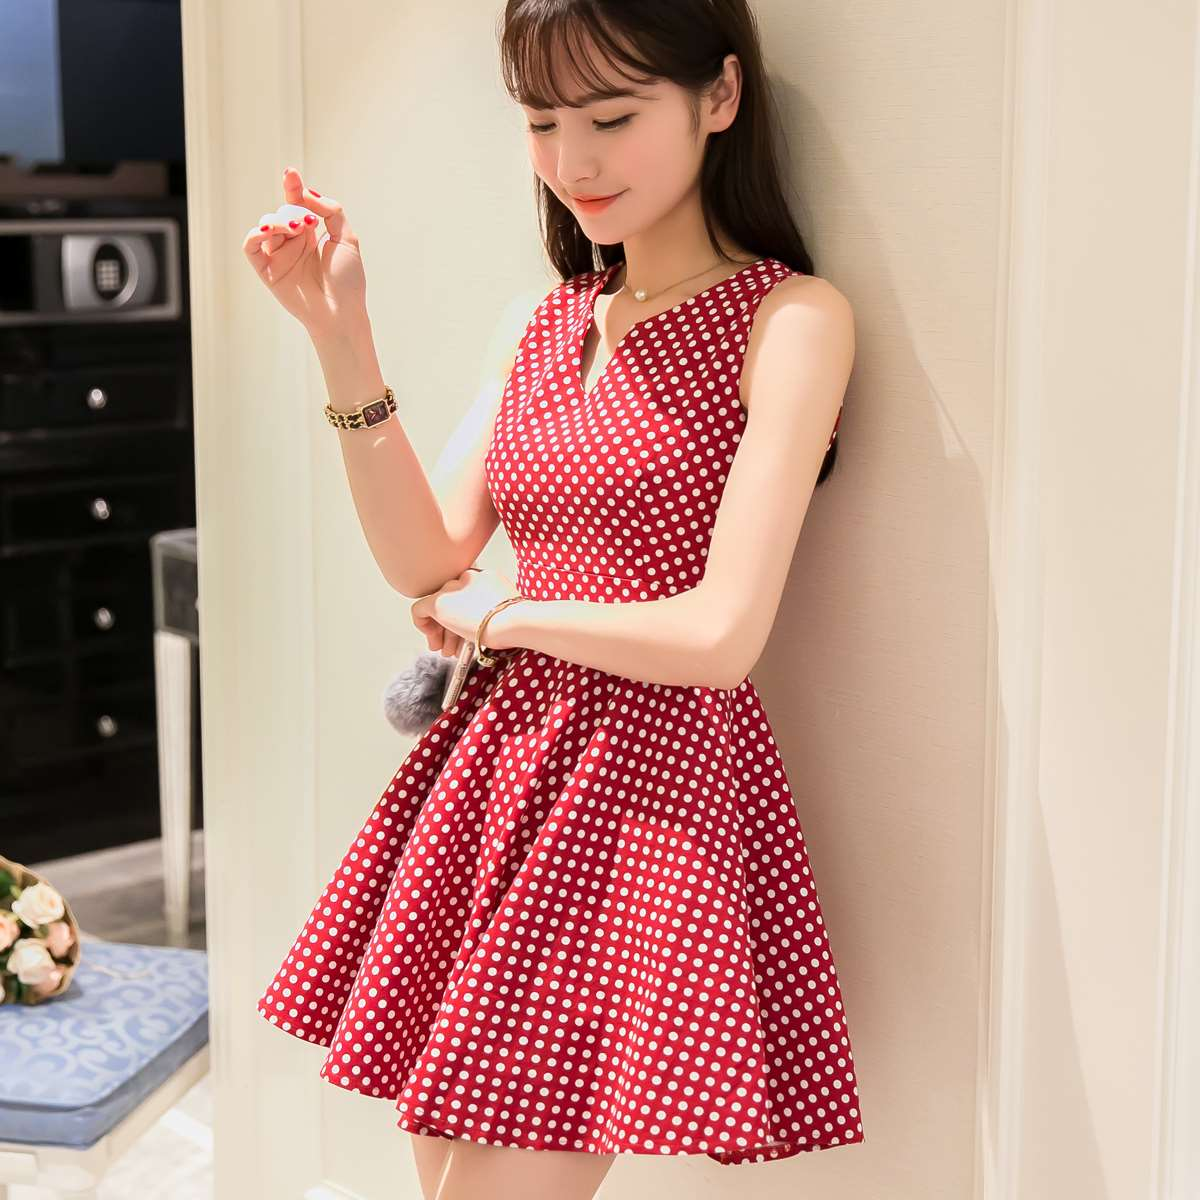 europe and america 2016 lolita small fresh one piece dress slim sweet red black color fashion. Black Bedroom Furniture Sets. Home Design Ideas